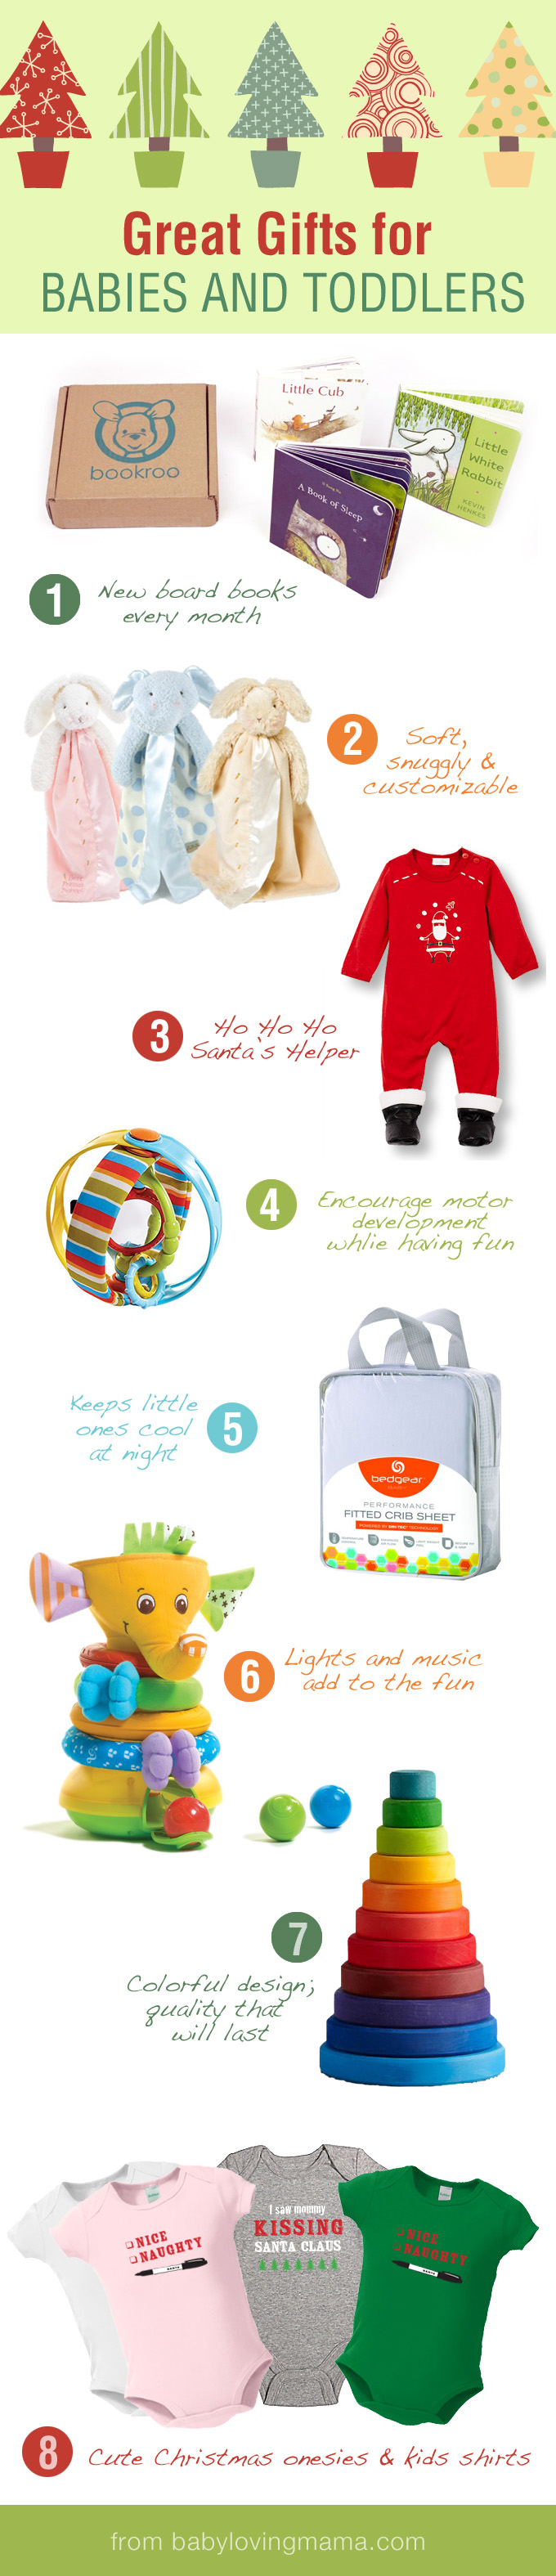 Great Gifts for Babies and Toddlers Holiday Gift Guide Round Up